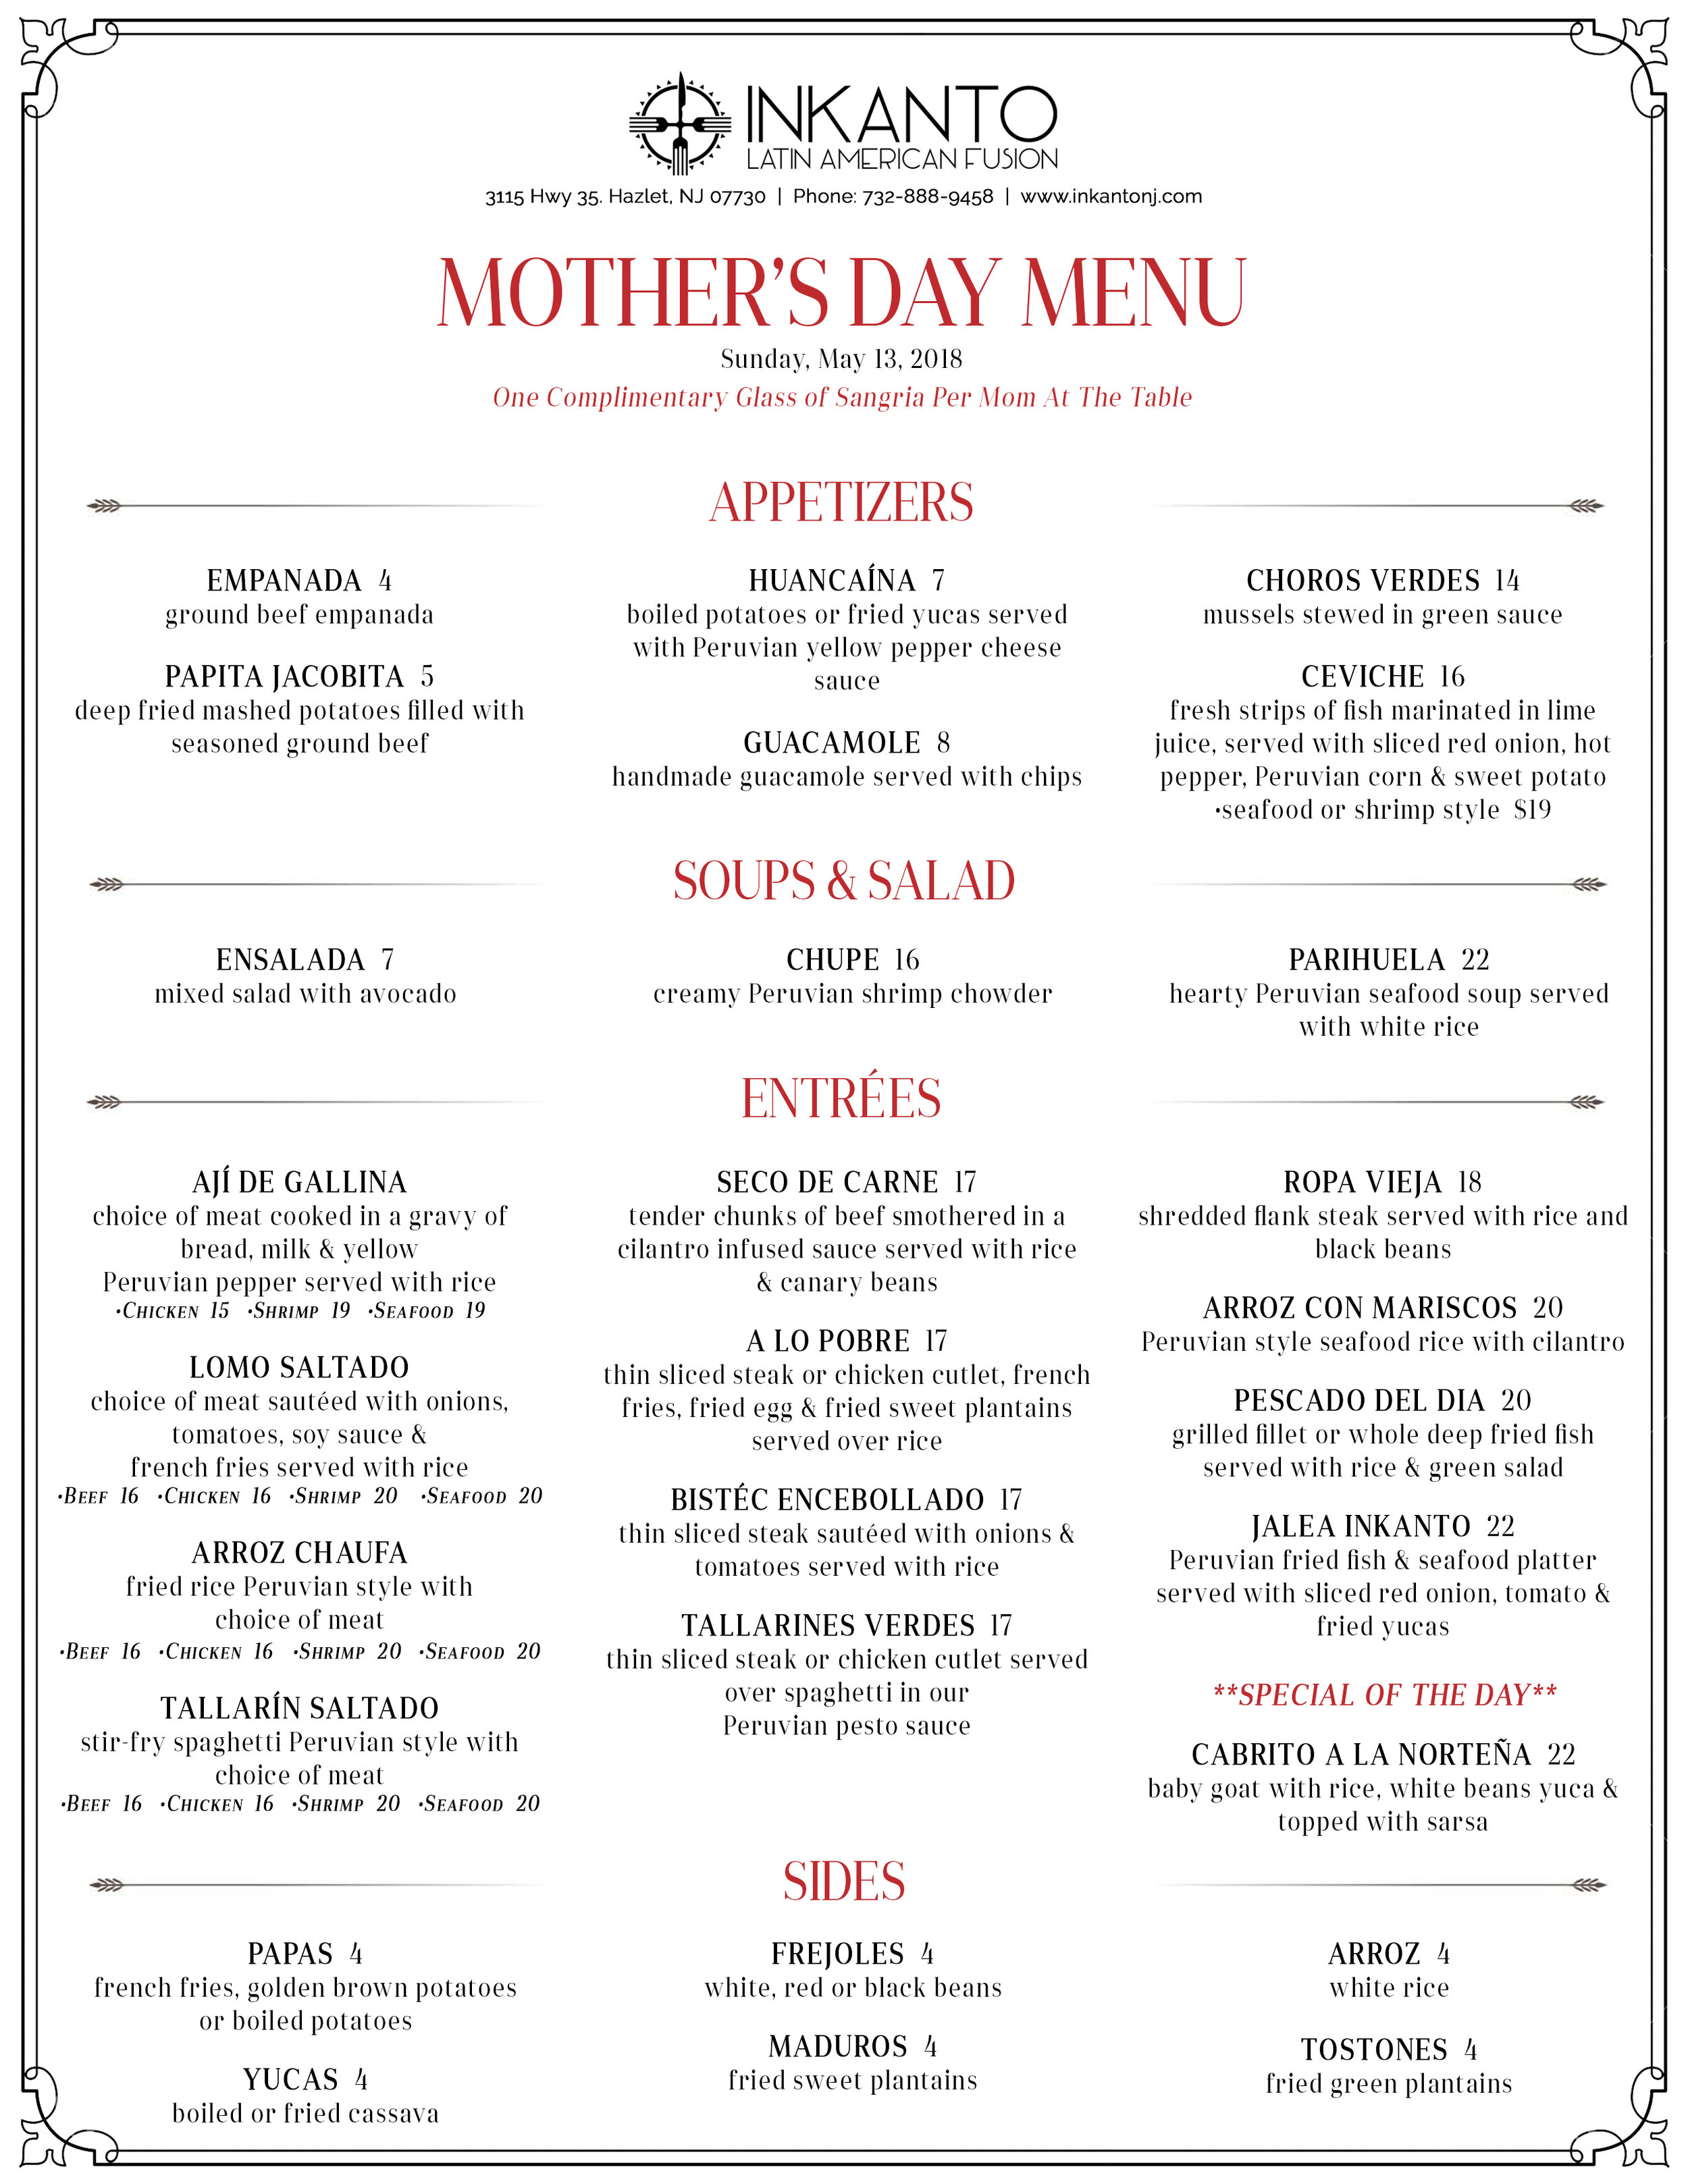 Mothers Day Menu.jpg